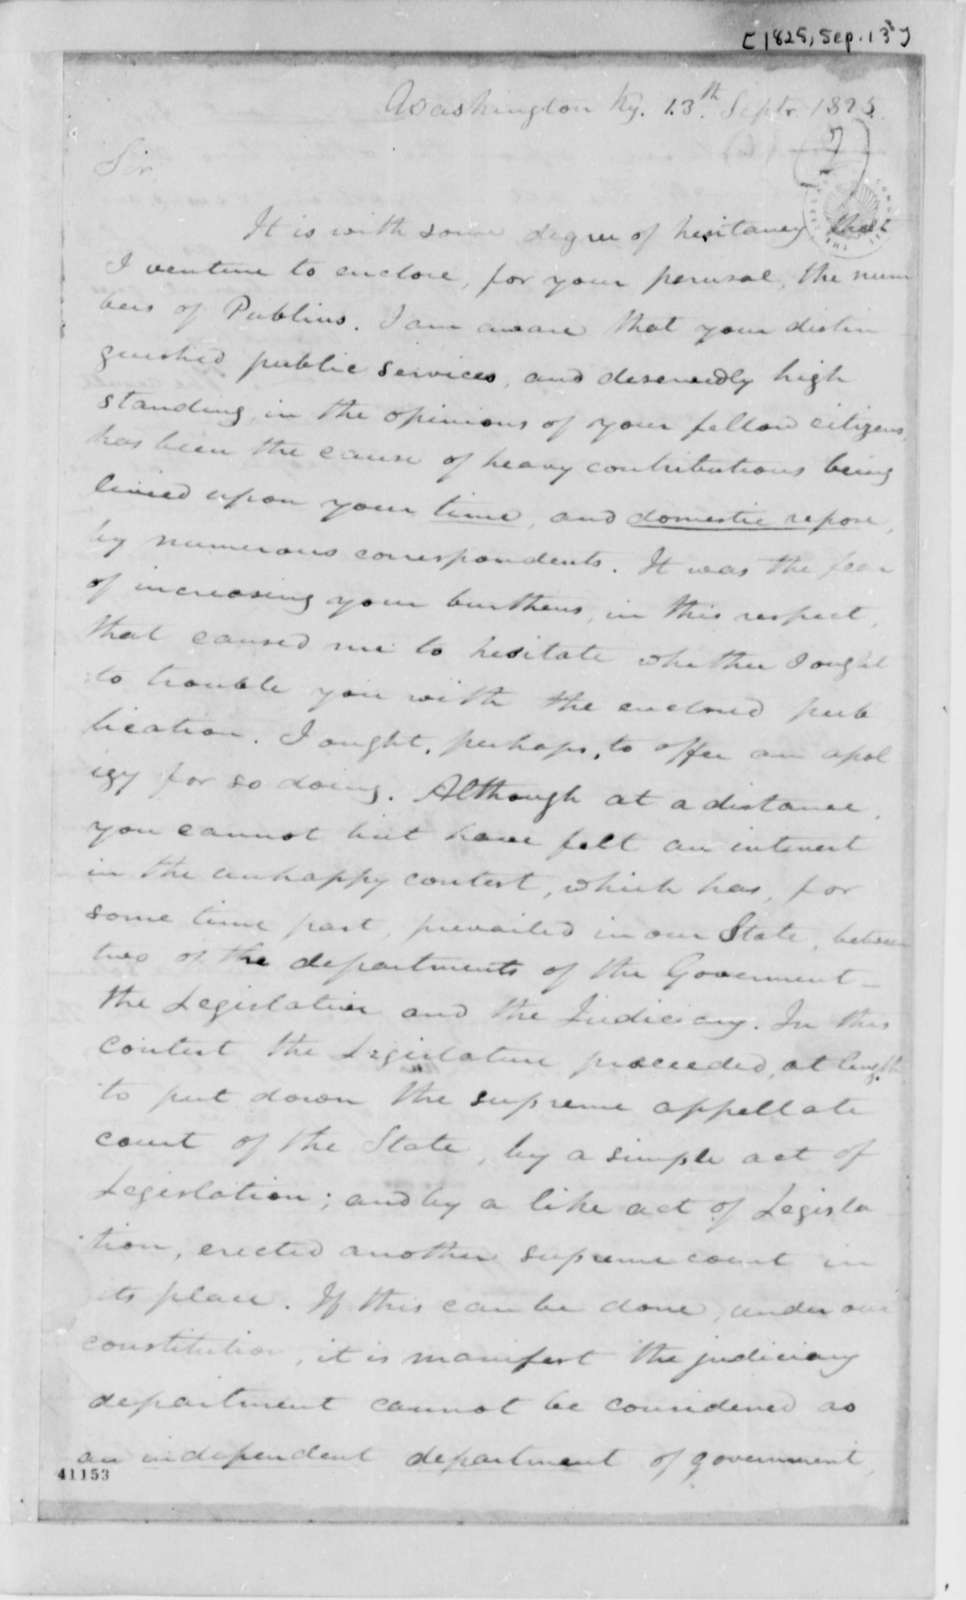 A. Beatty to Thomas Jefferson, September 13, 1825